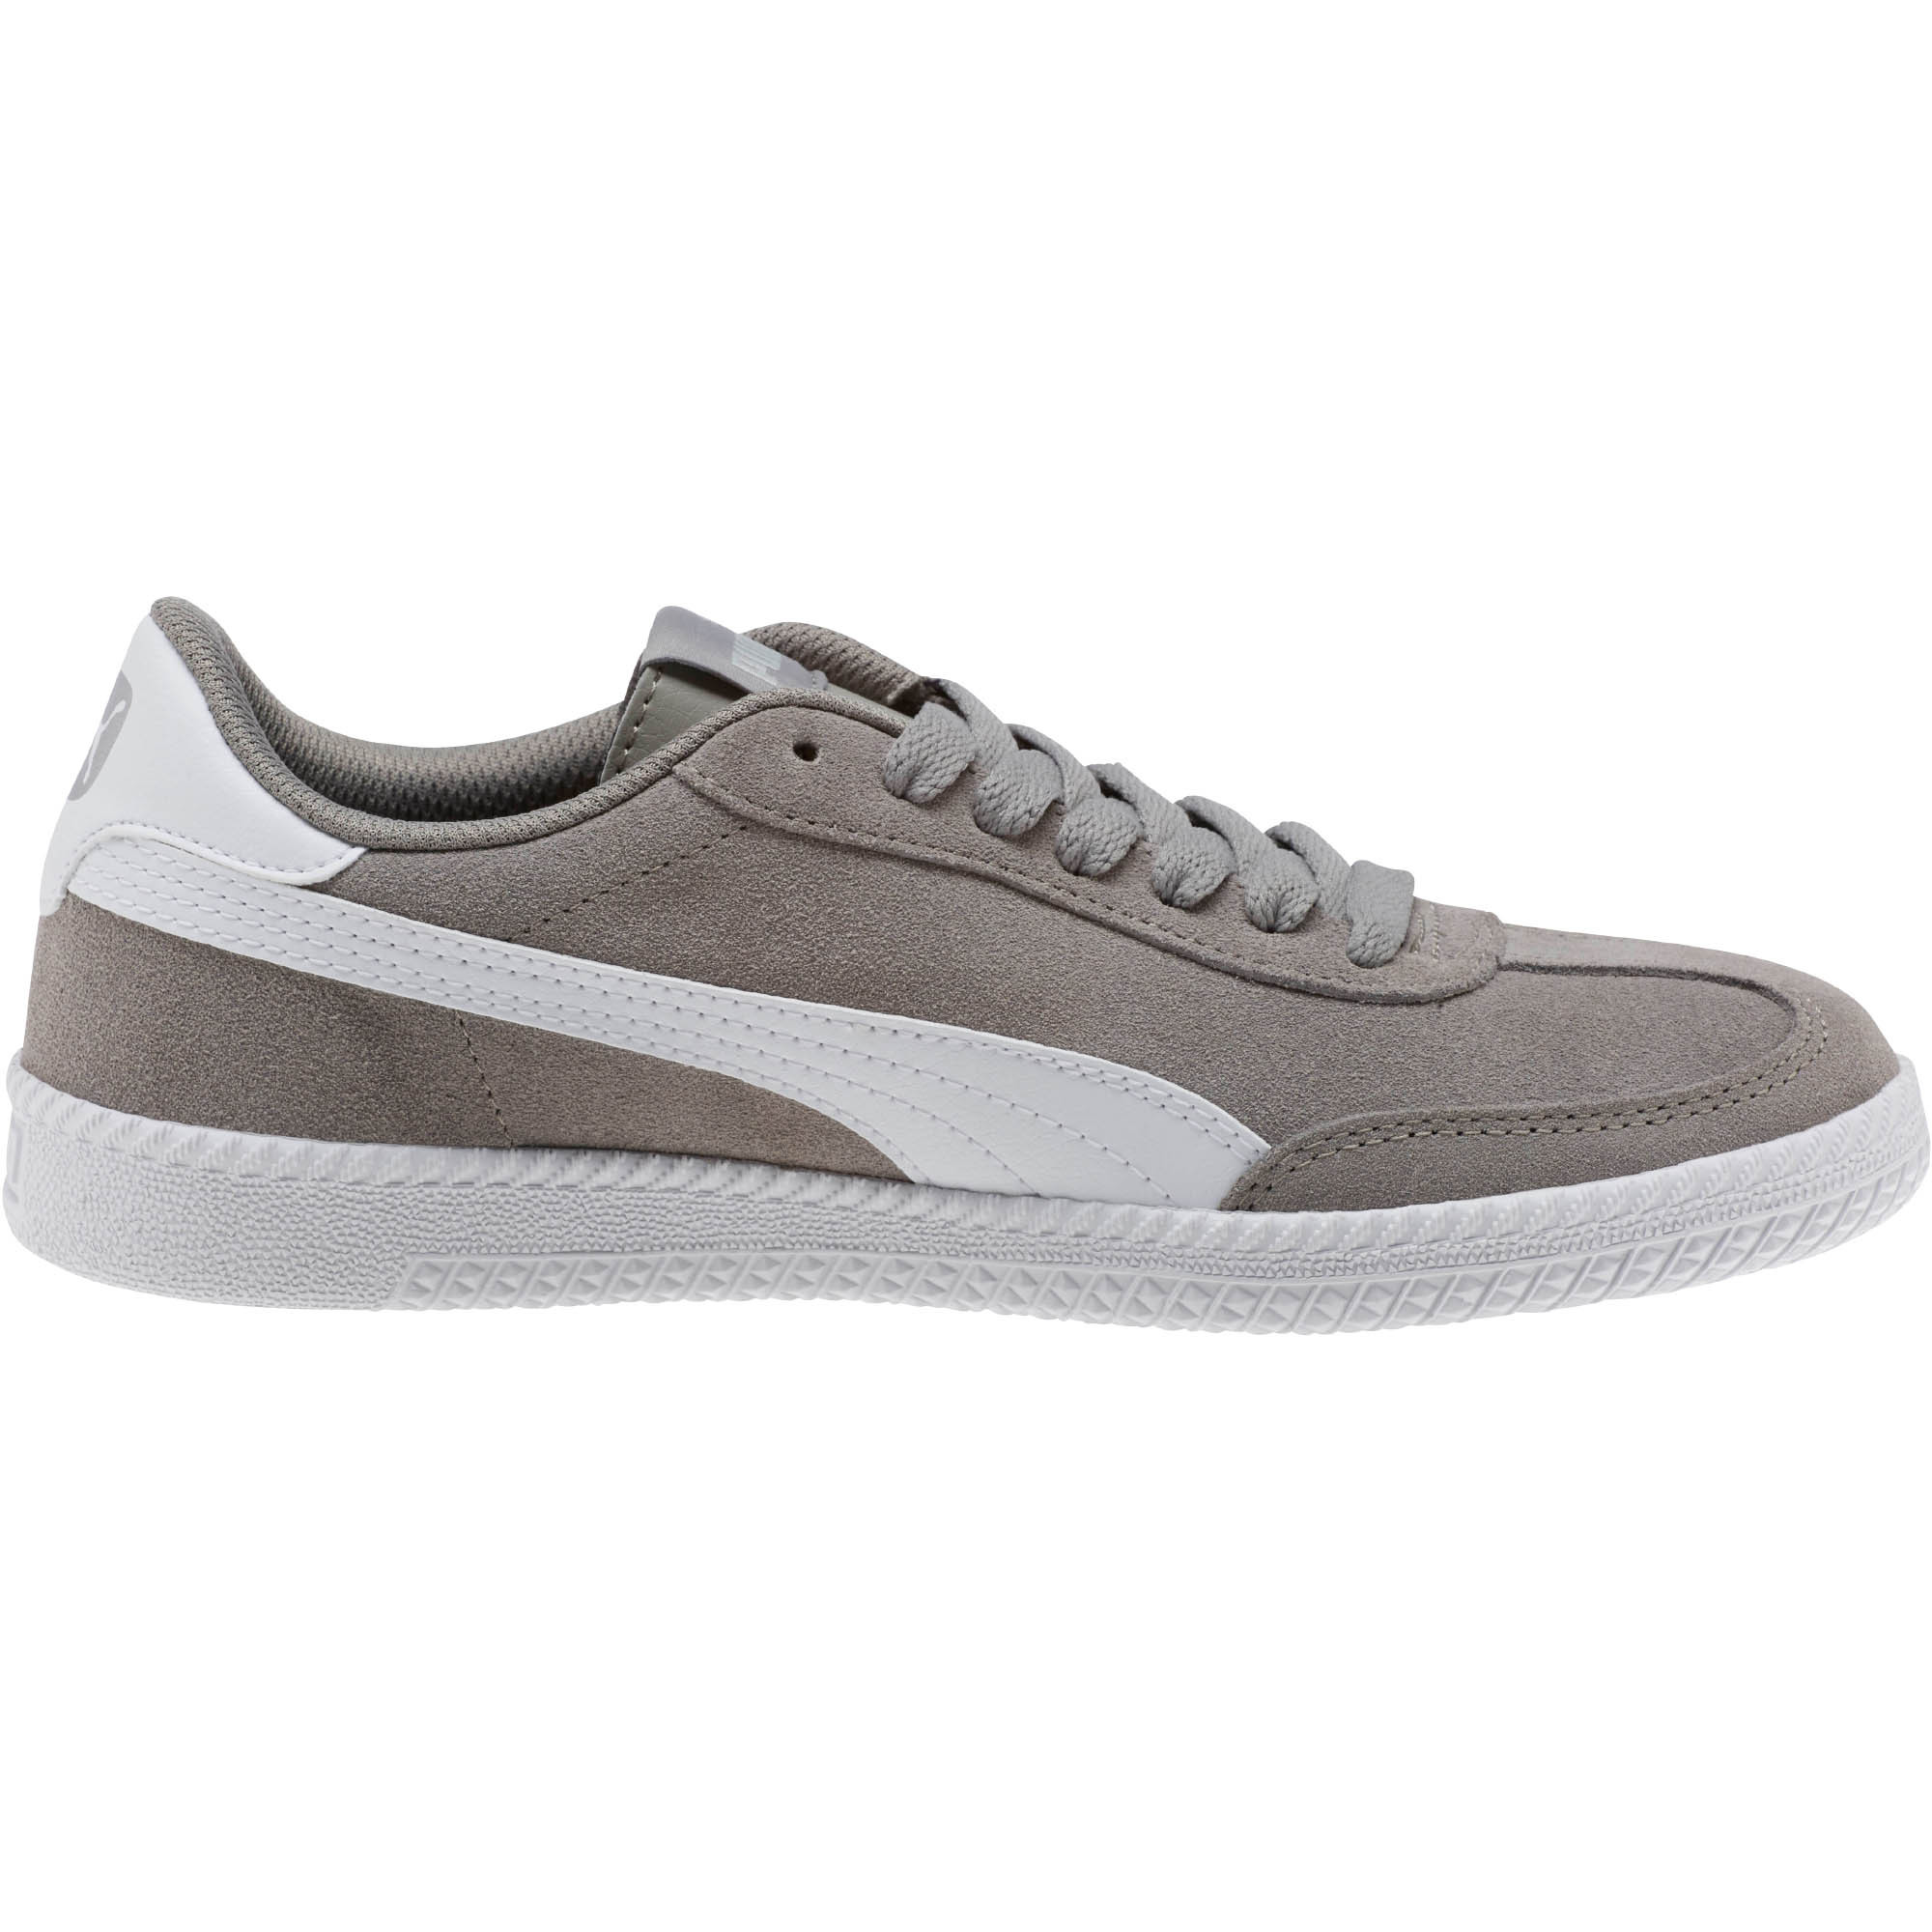 PUMA-Astro-Cup-Suede-Sneakers-Men-Shoe-Basics thumbnail 20